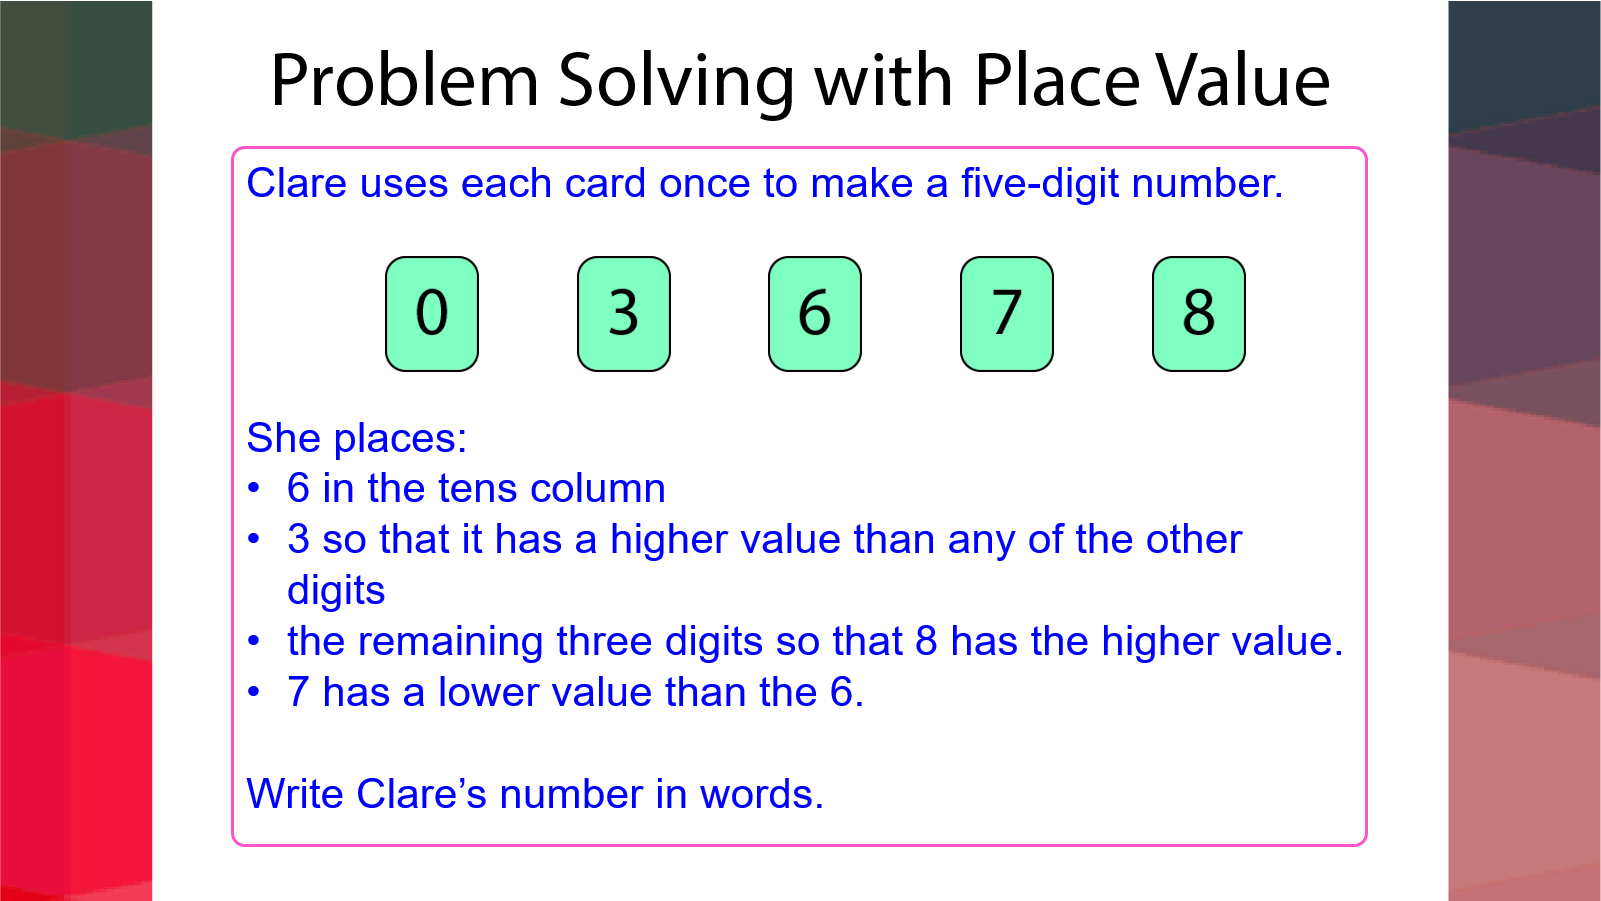 Problem Solving with Place Value